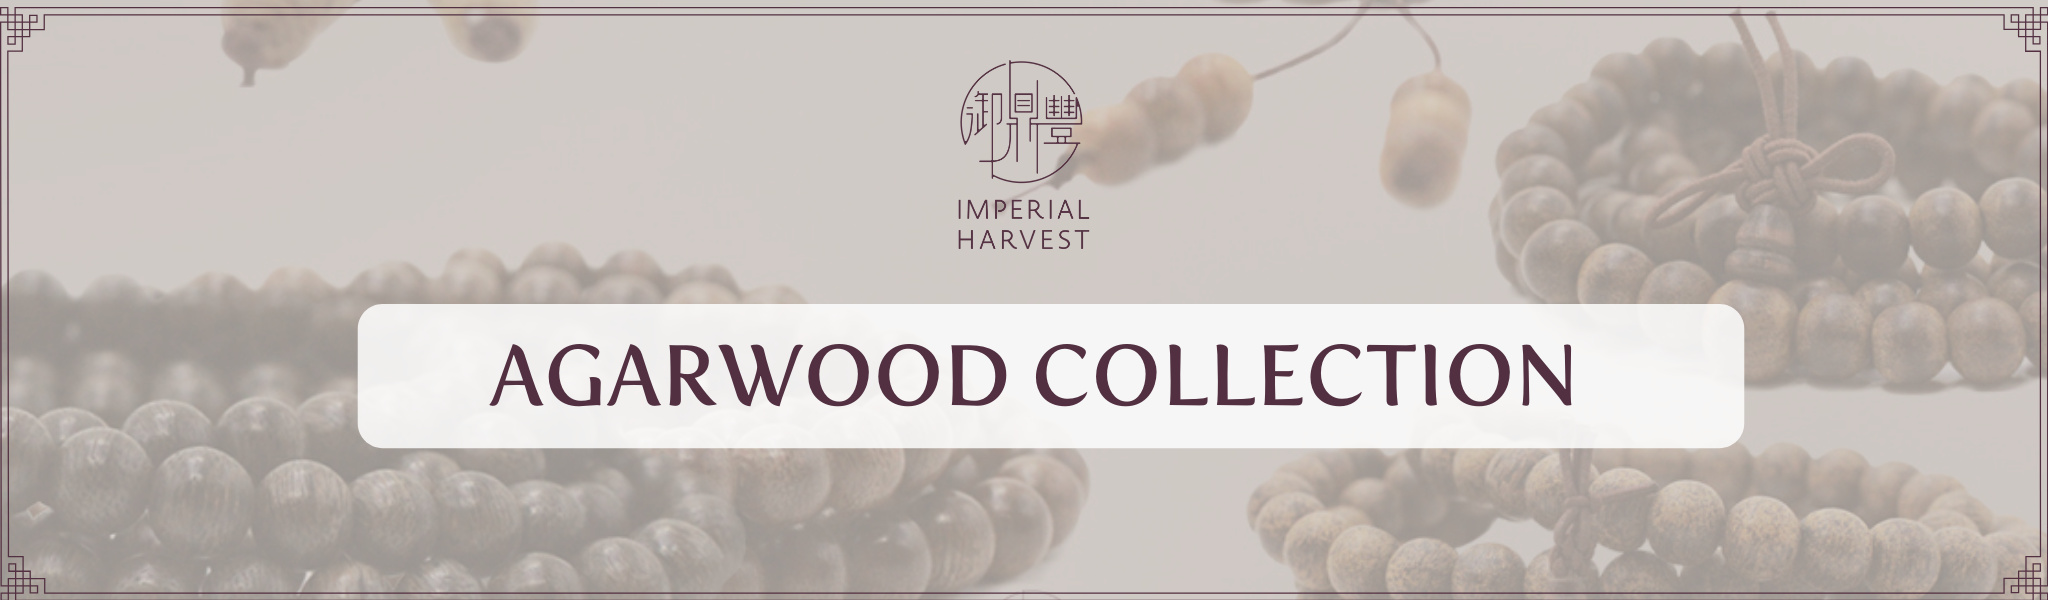 agarwood_collection_landing_page_final_1